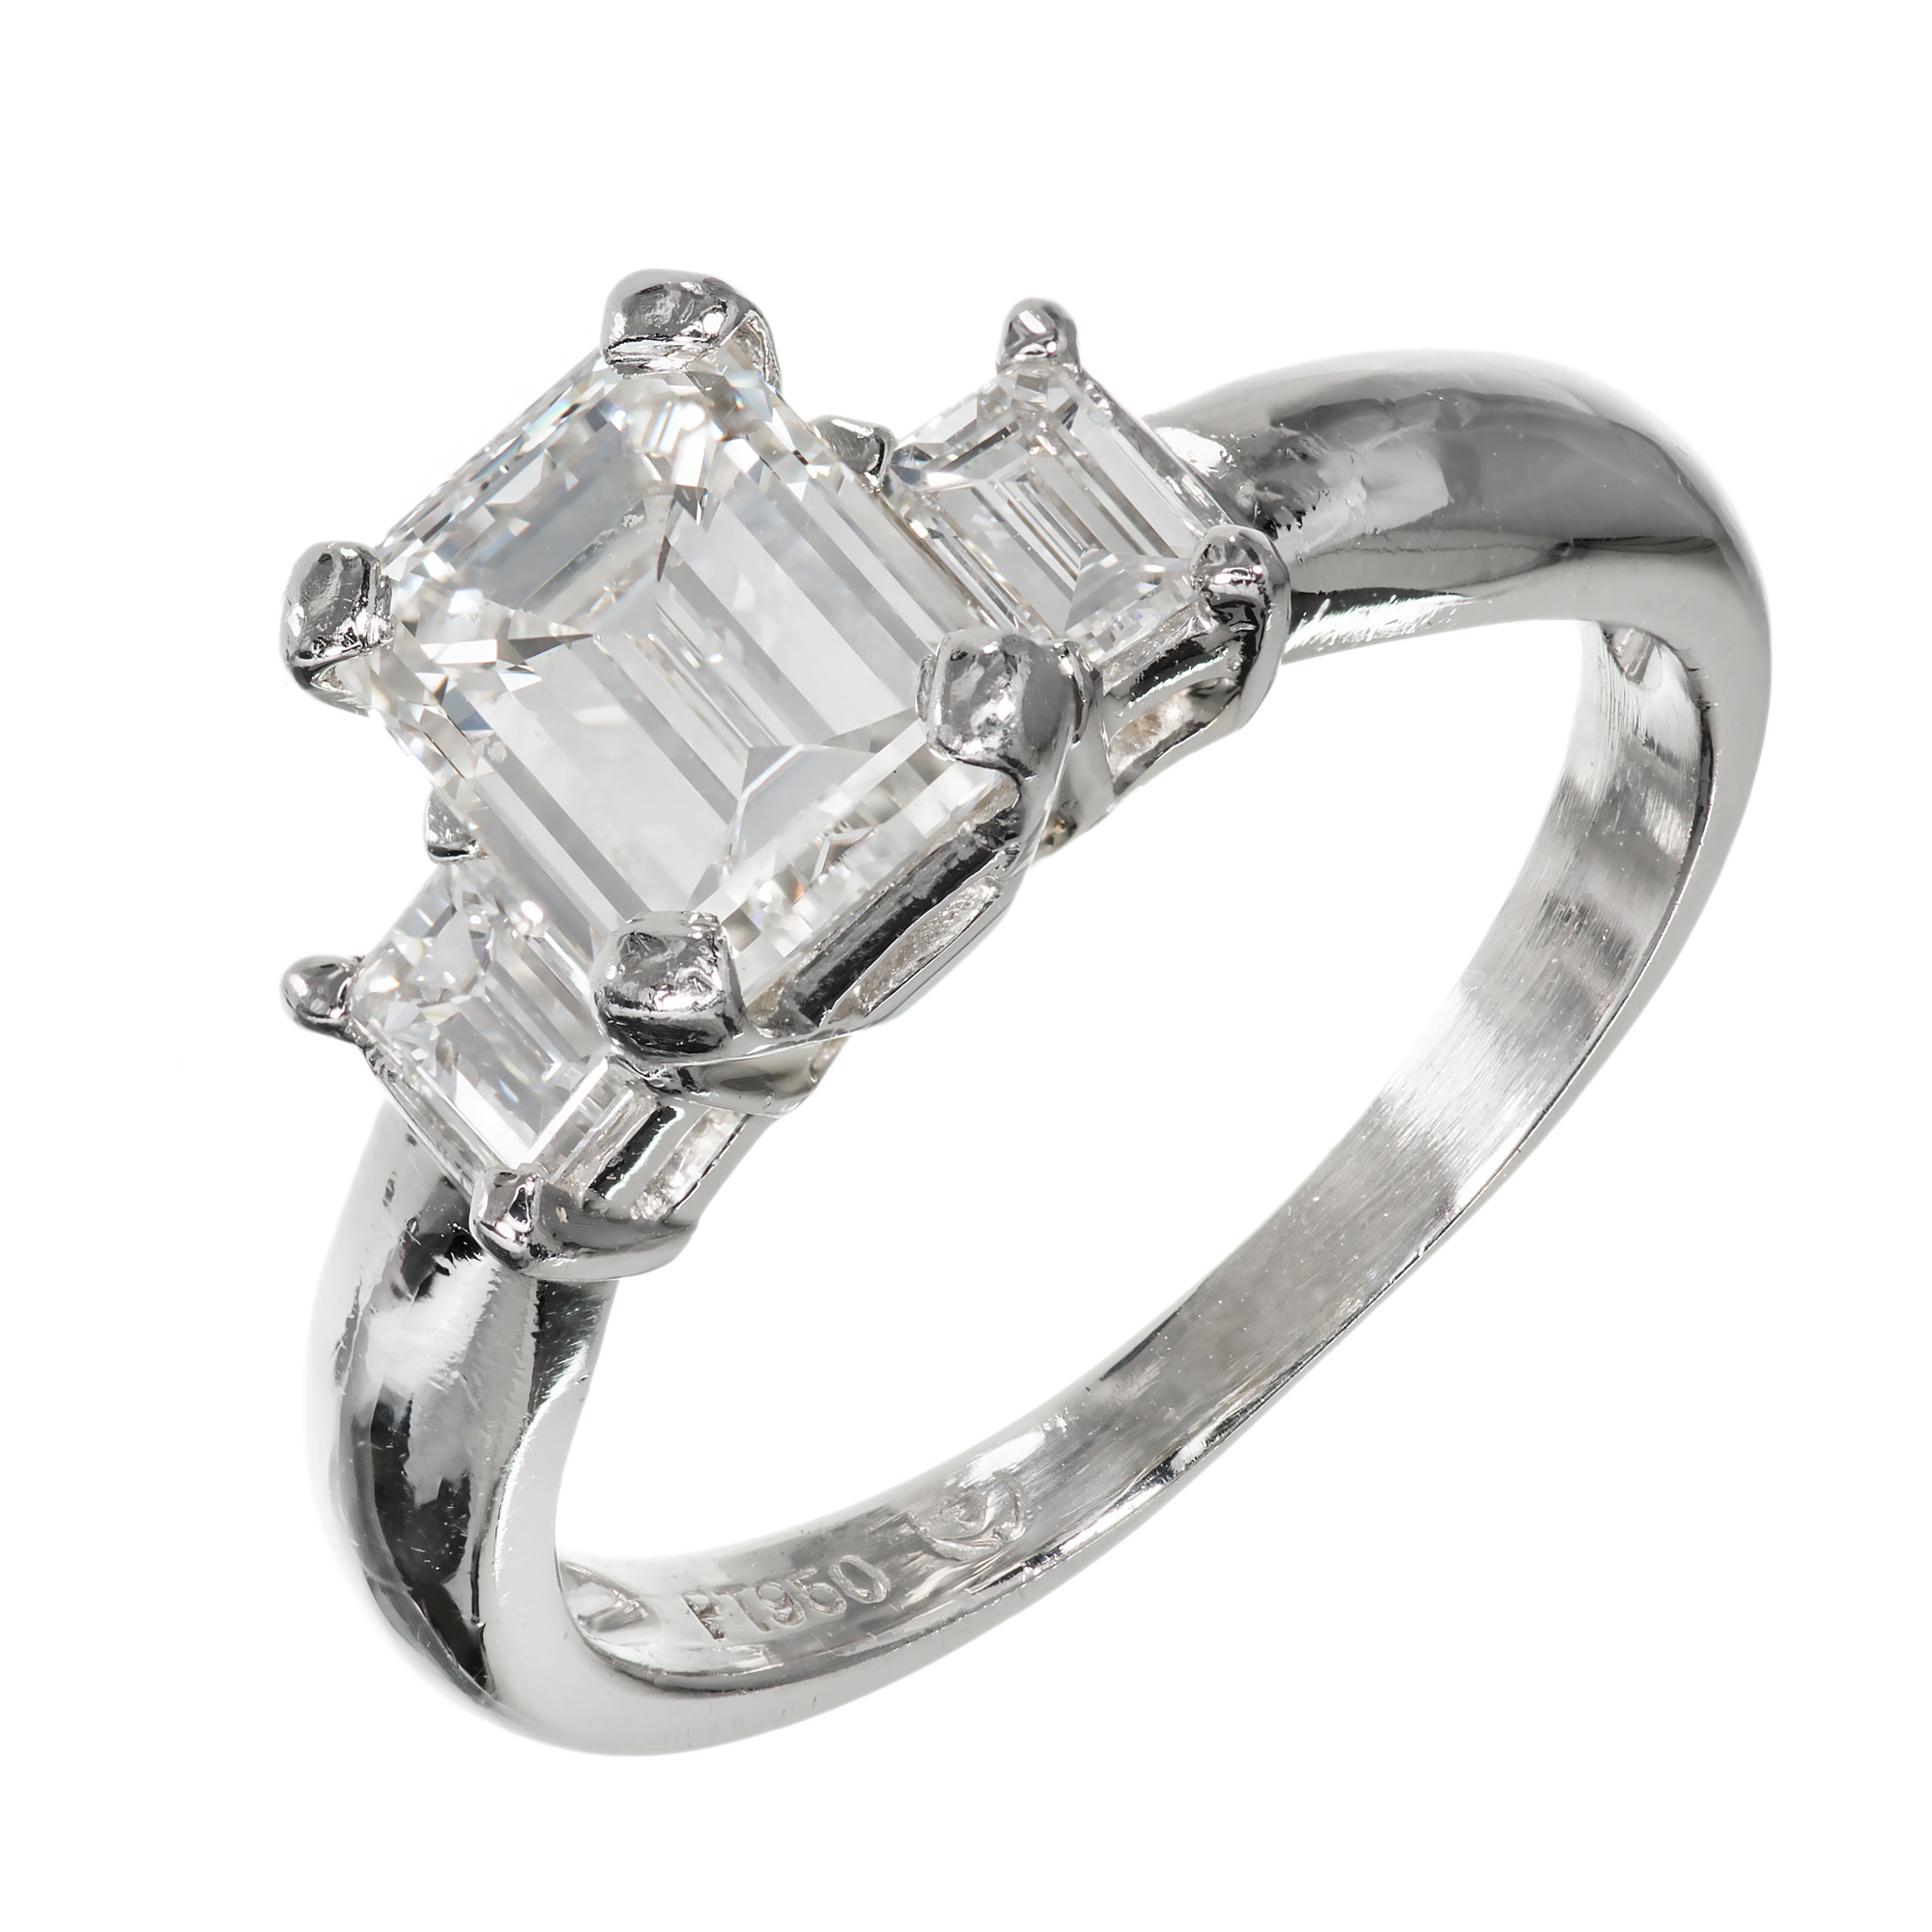 """""Platinum with 1.51ct Diamond Ring Size 5.75"""""" 2138264"